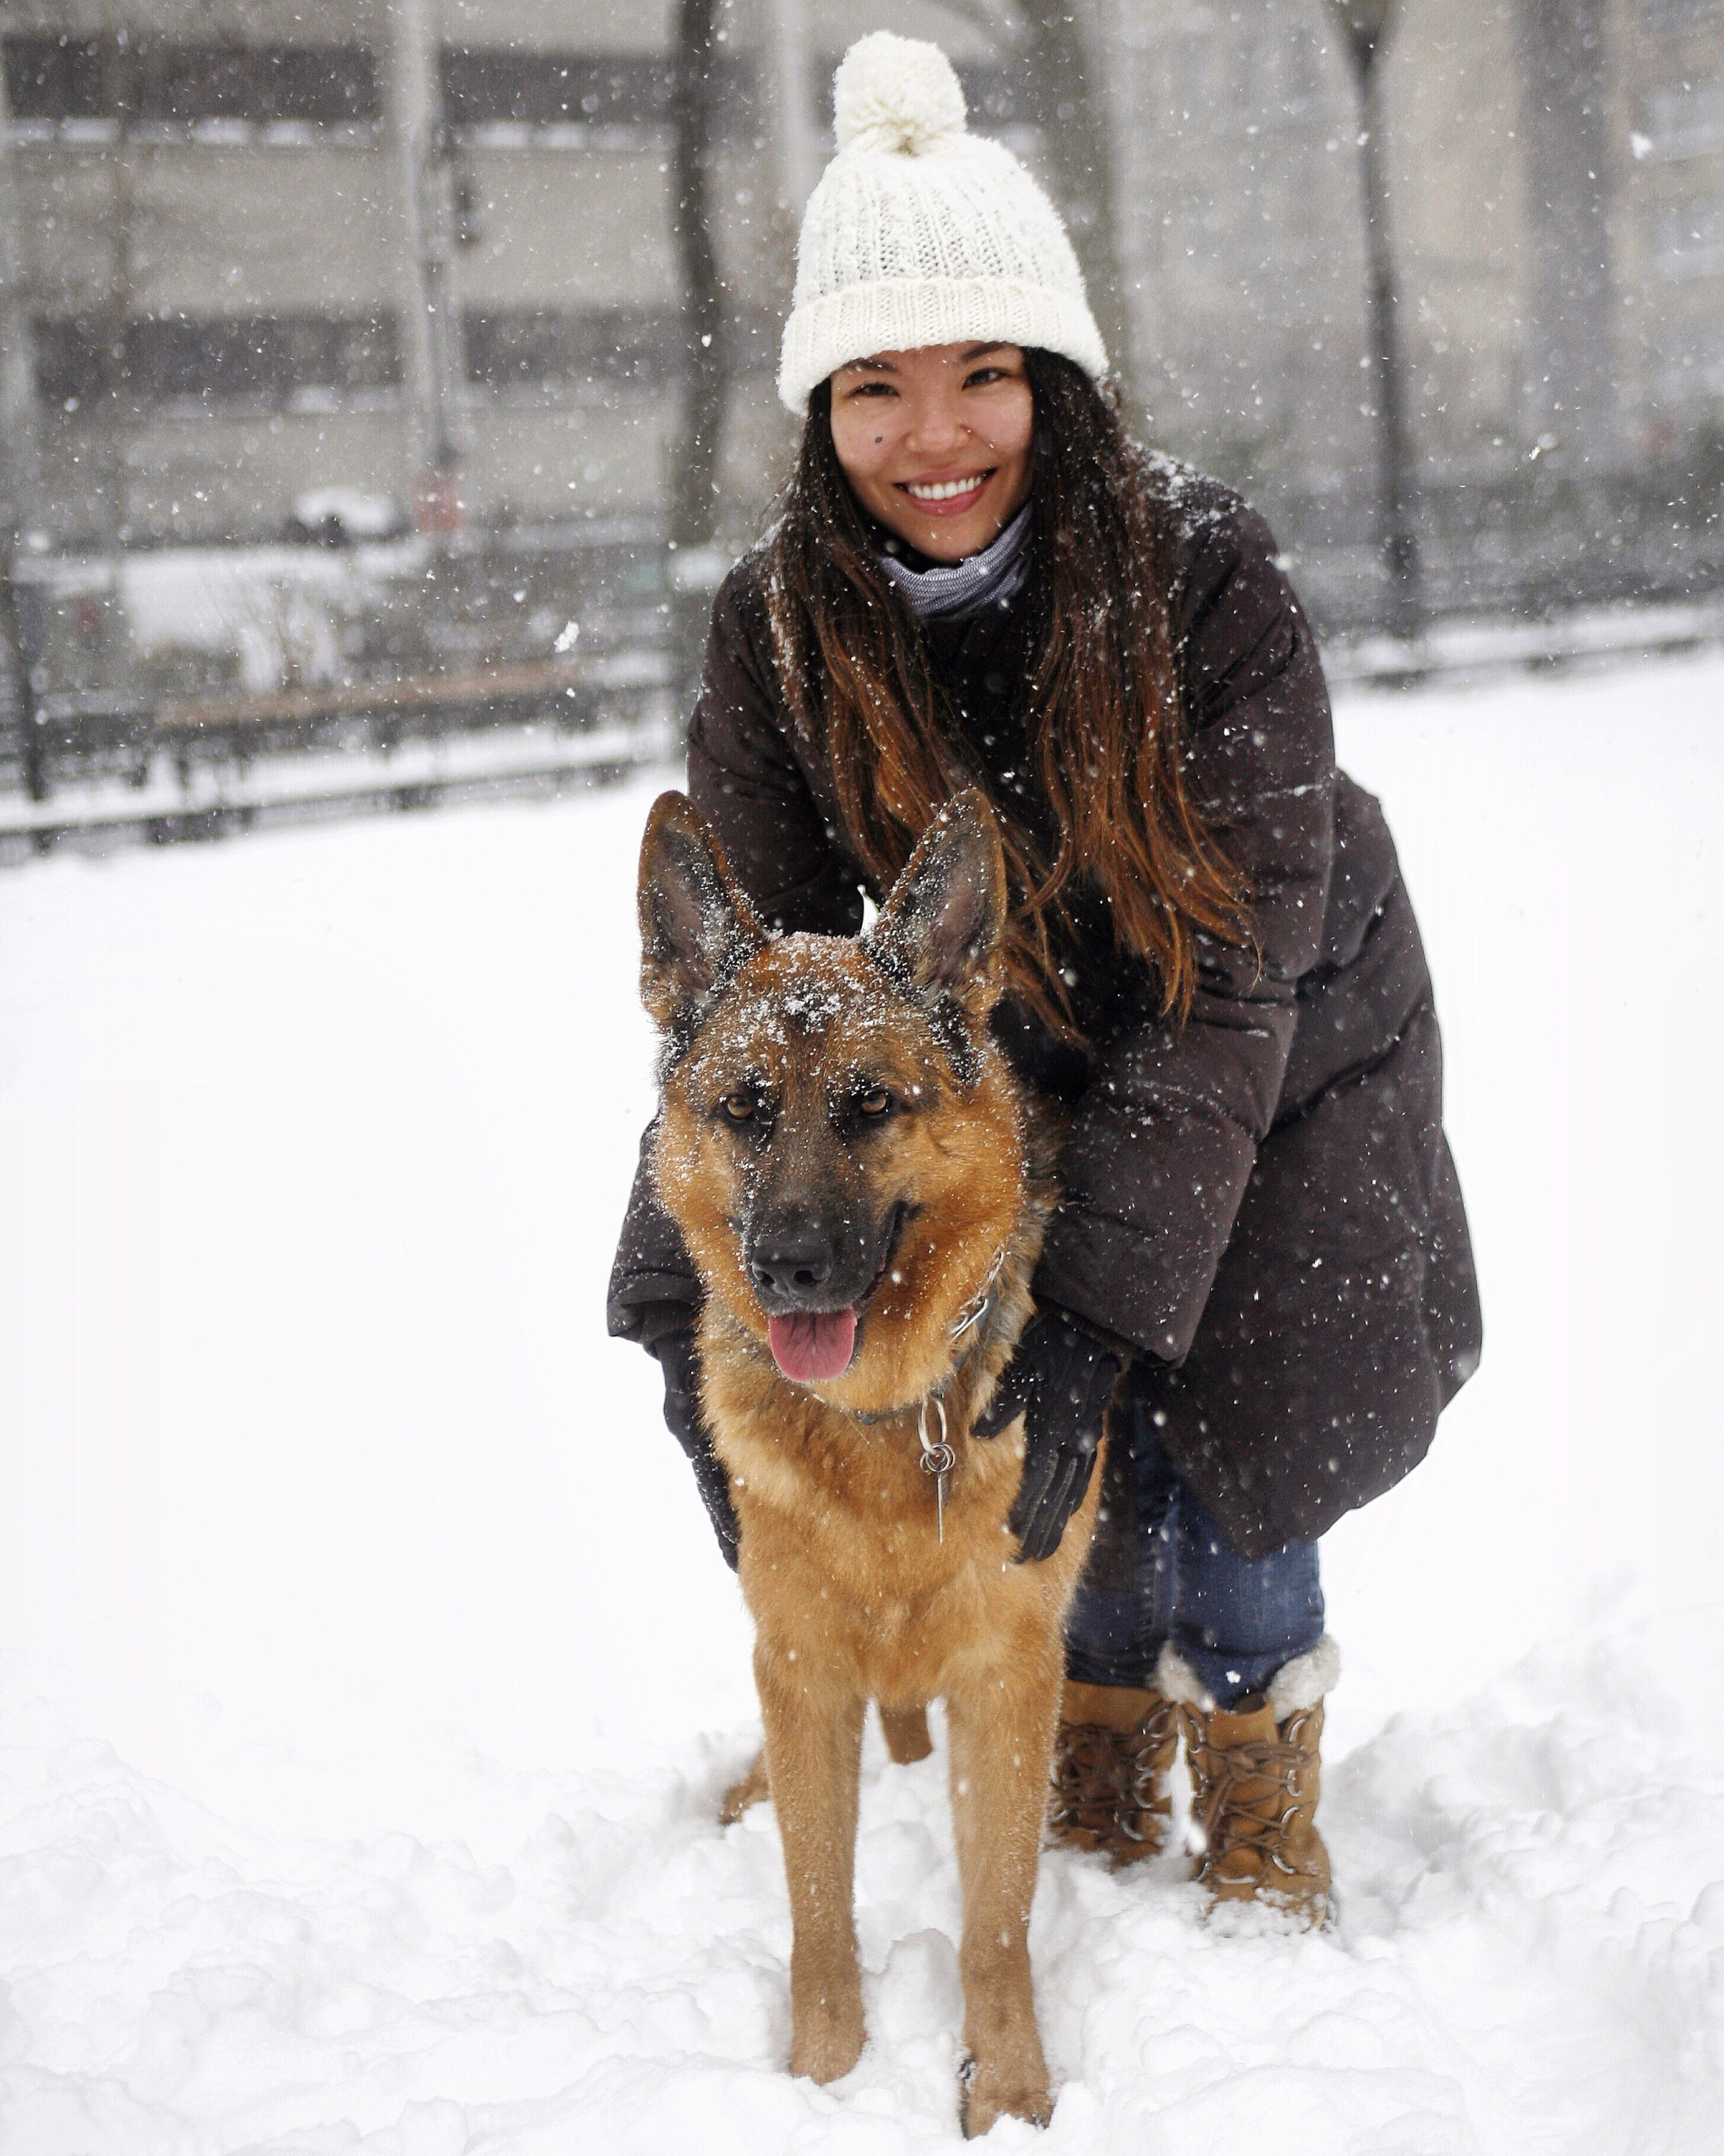 MaQ & I enjoying Blizzard Jonas . New York City, January 23, 2016. ©  Gilles Decamps